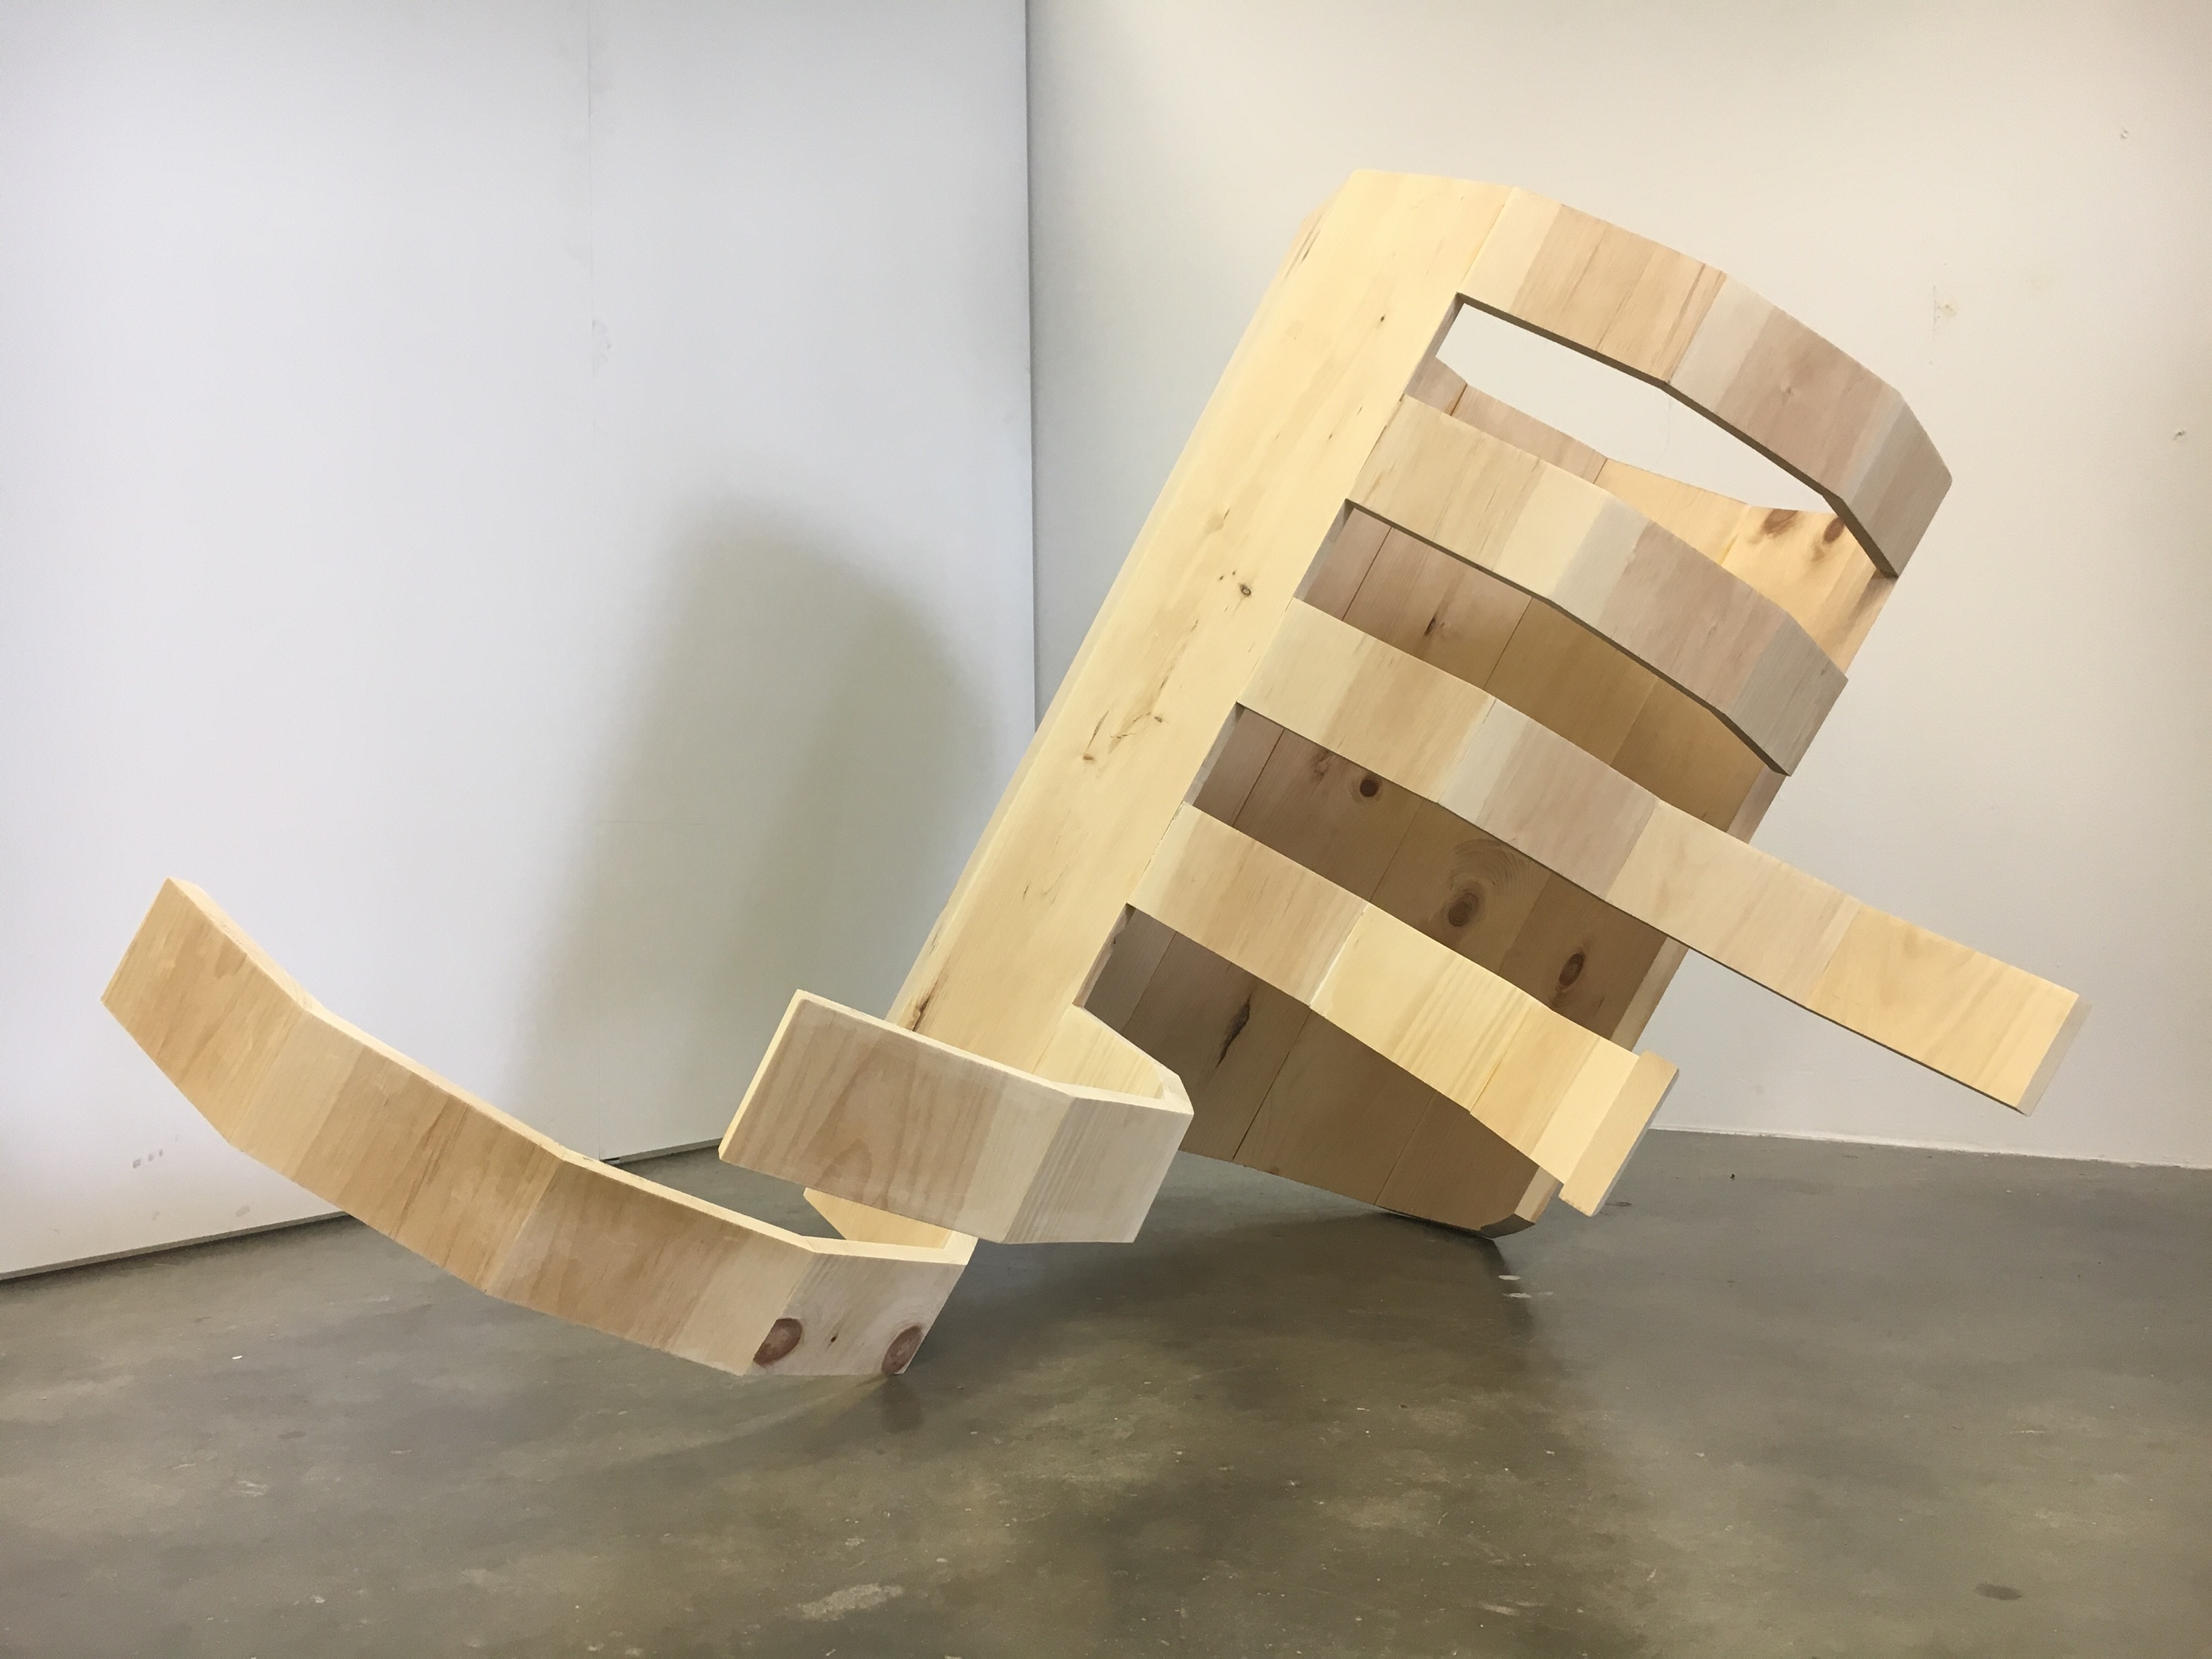 Wooden sculpture of an organic bending form